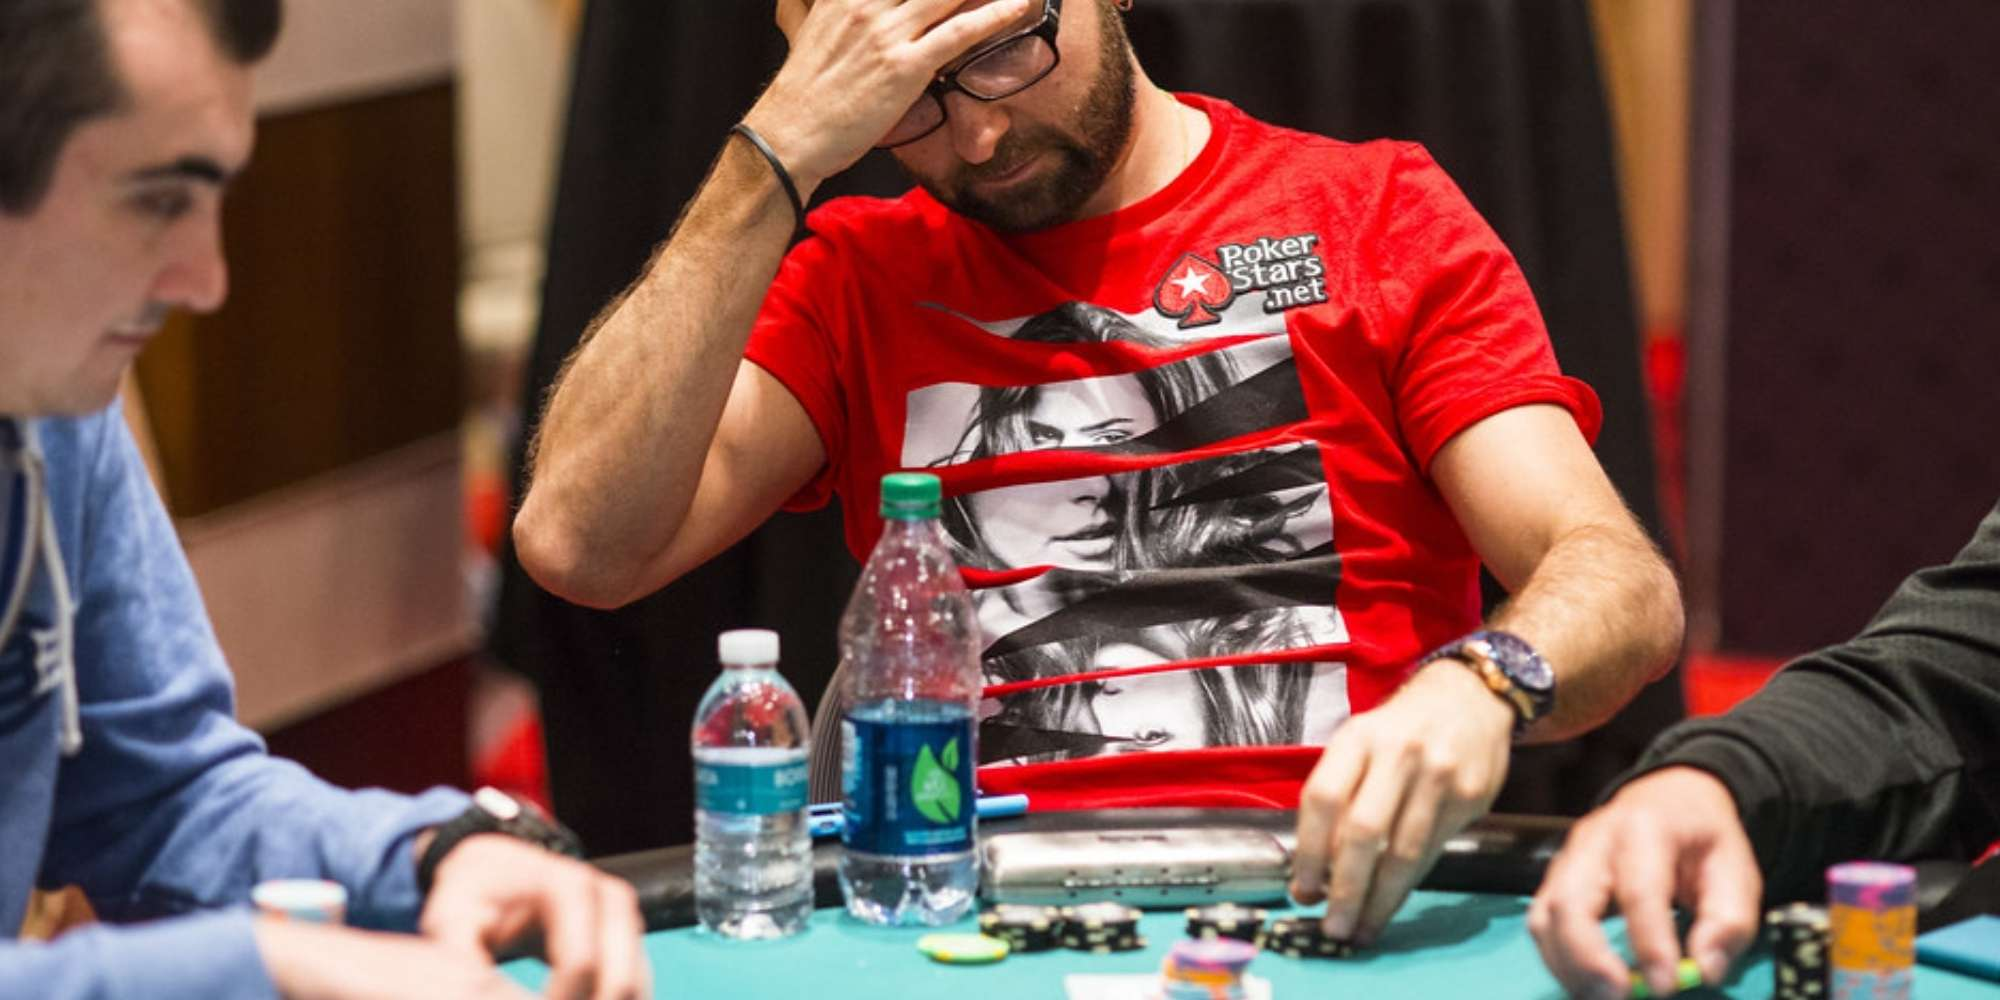 What Makes Professional Poker Players Great